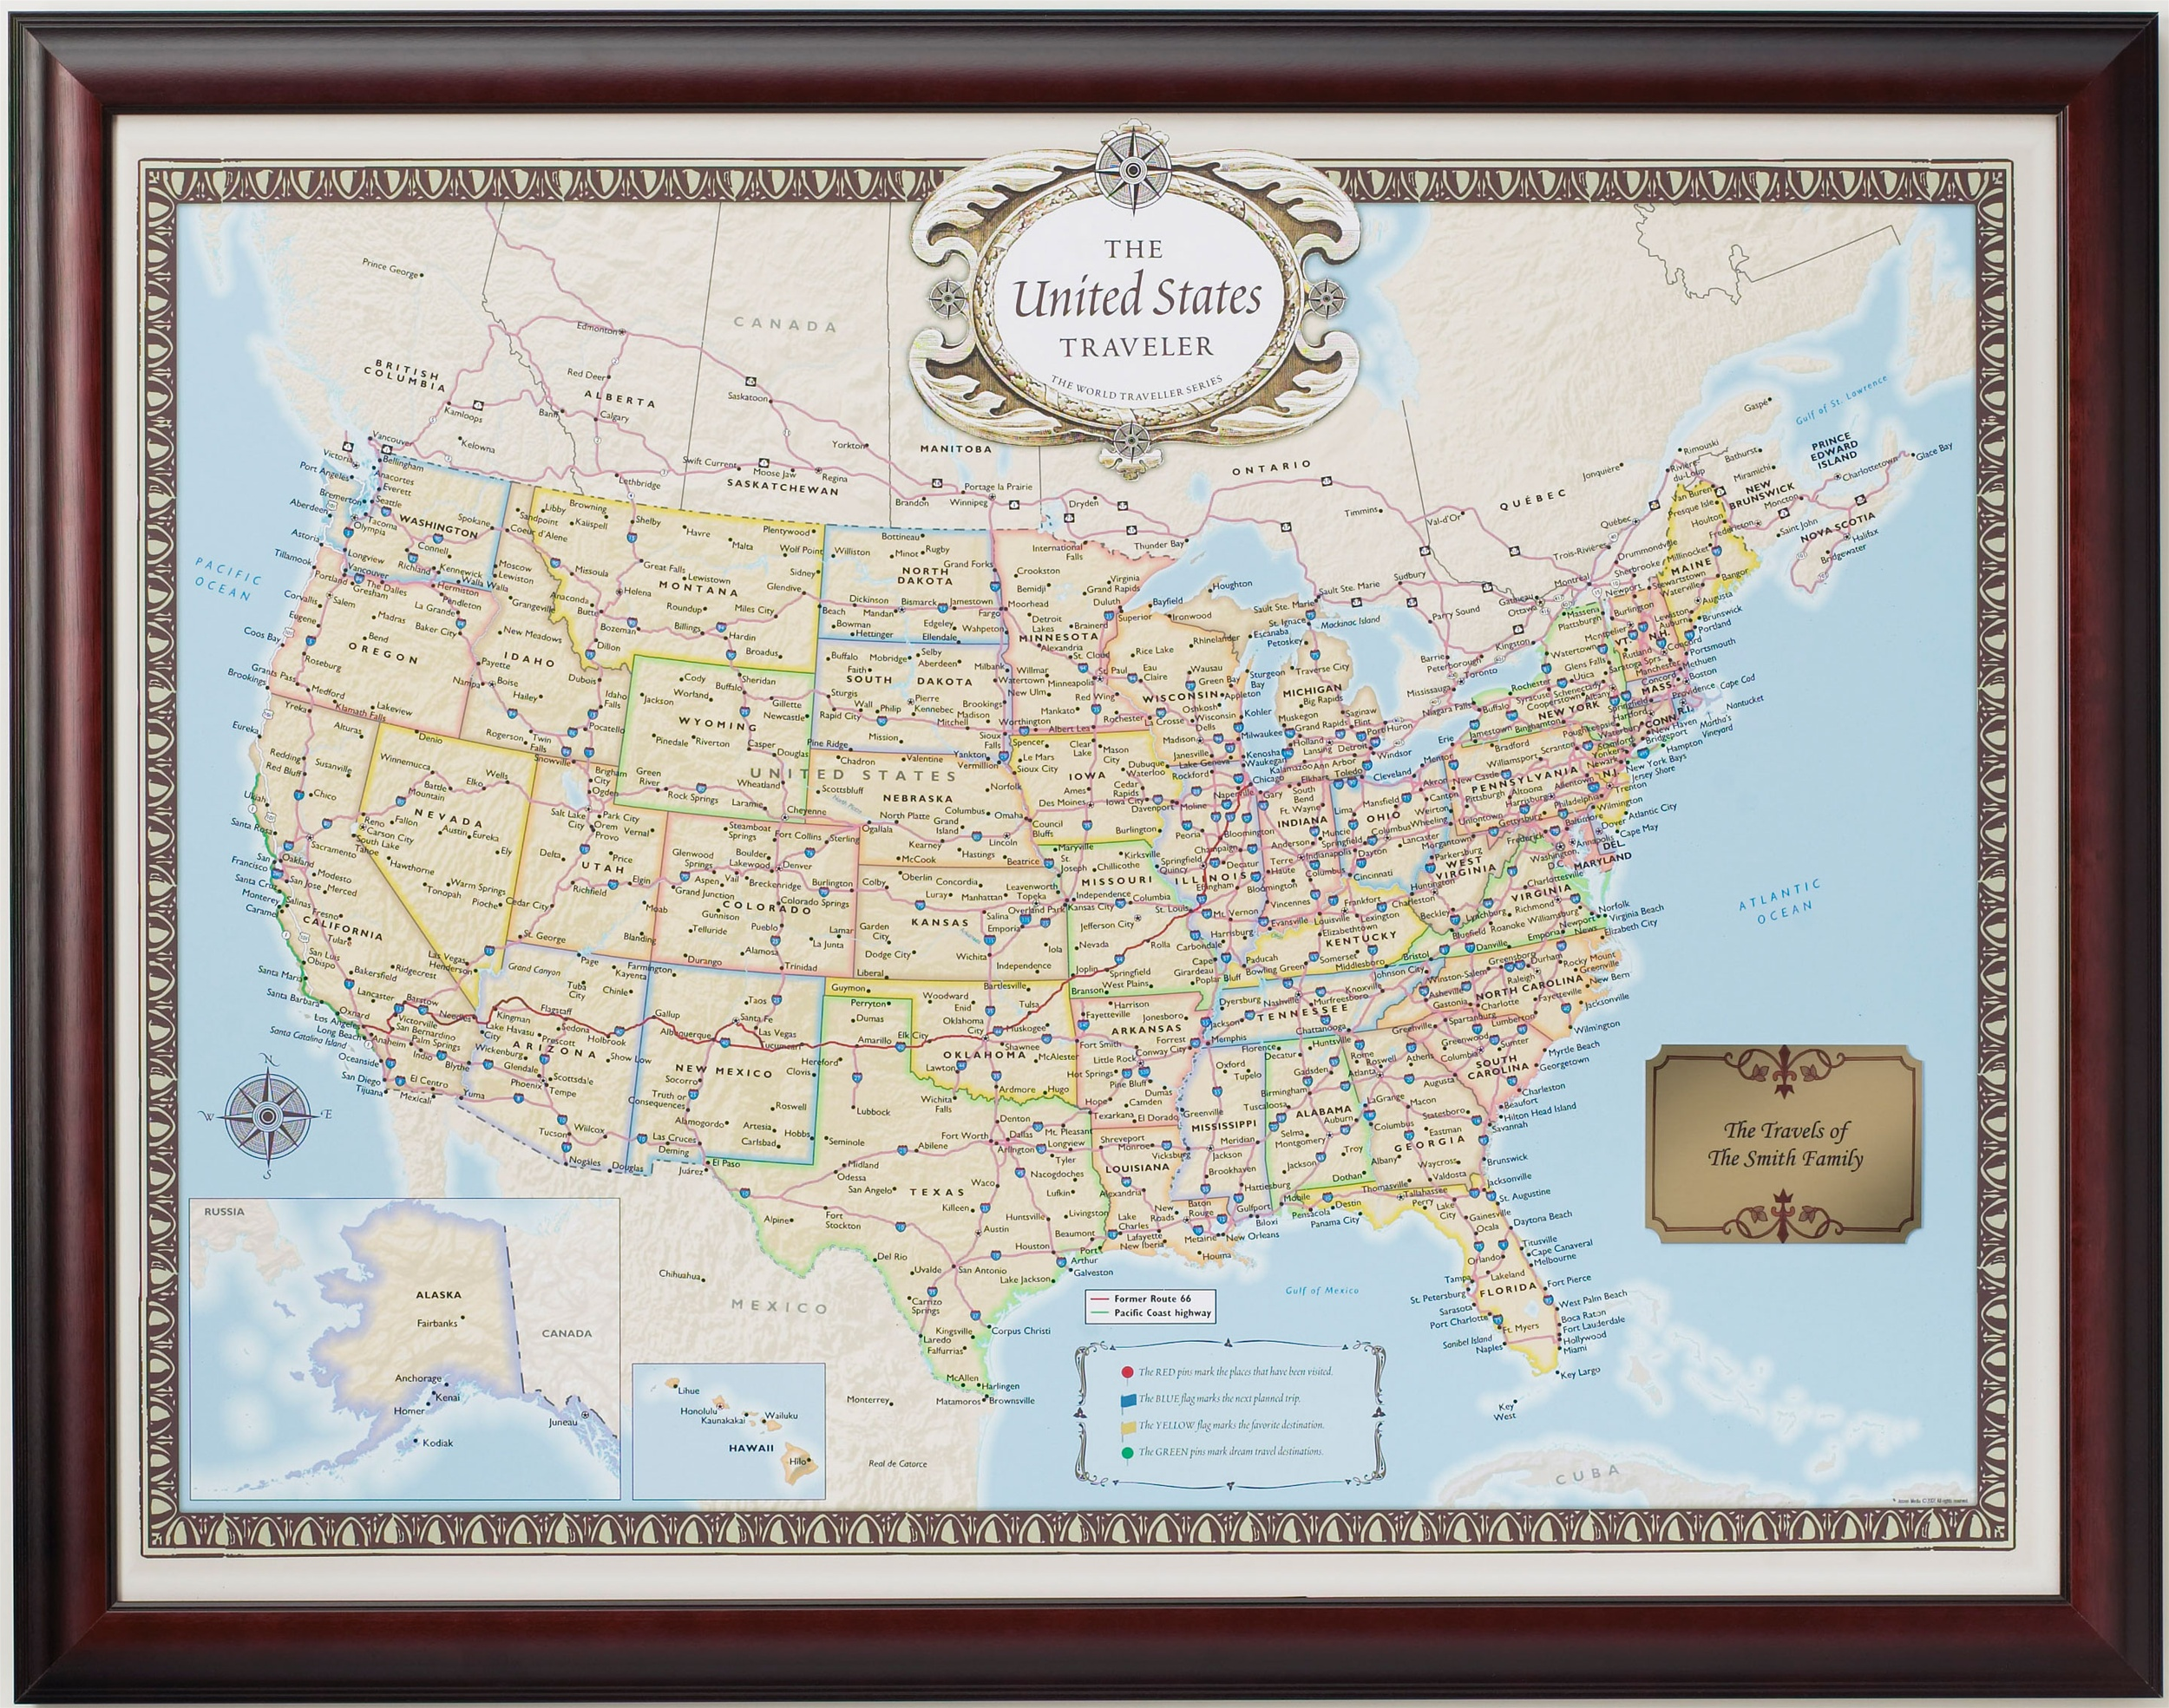 United states traveler push pin map personalized from onlyglobes alternative views gumiabroncs Image collections